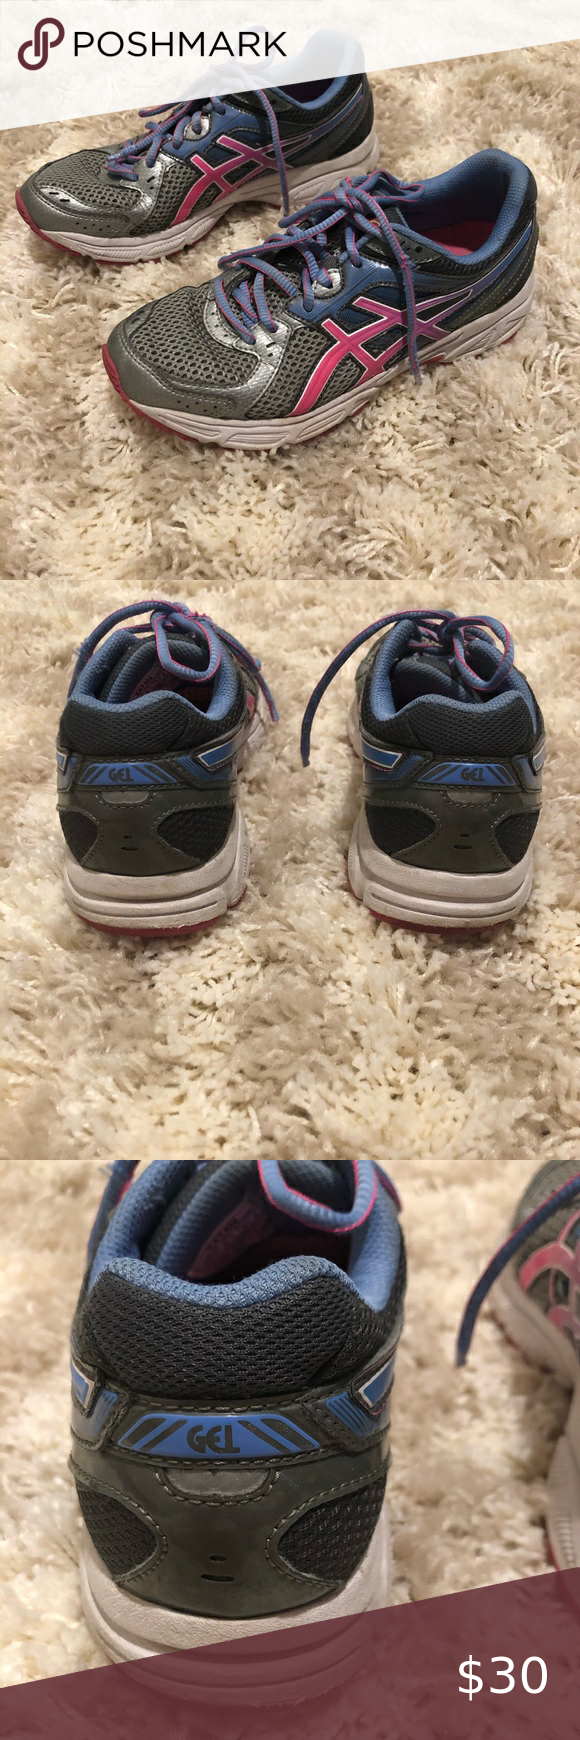 ASICS] Gel-Contend T474N Running Shoes